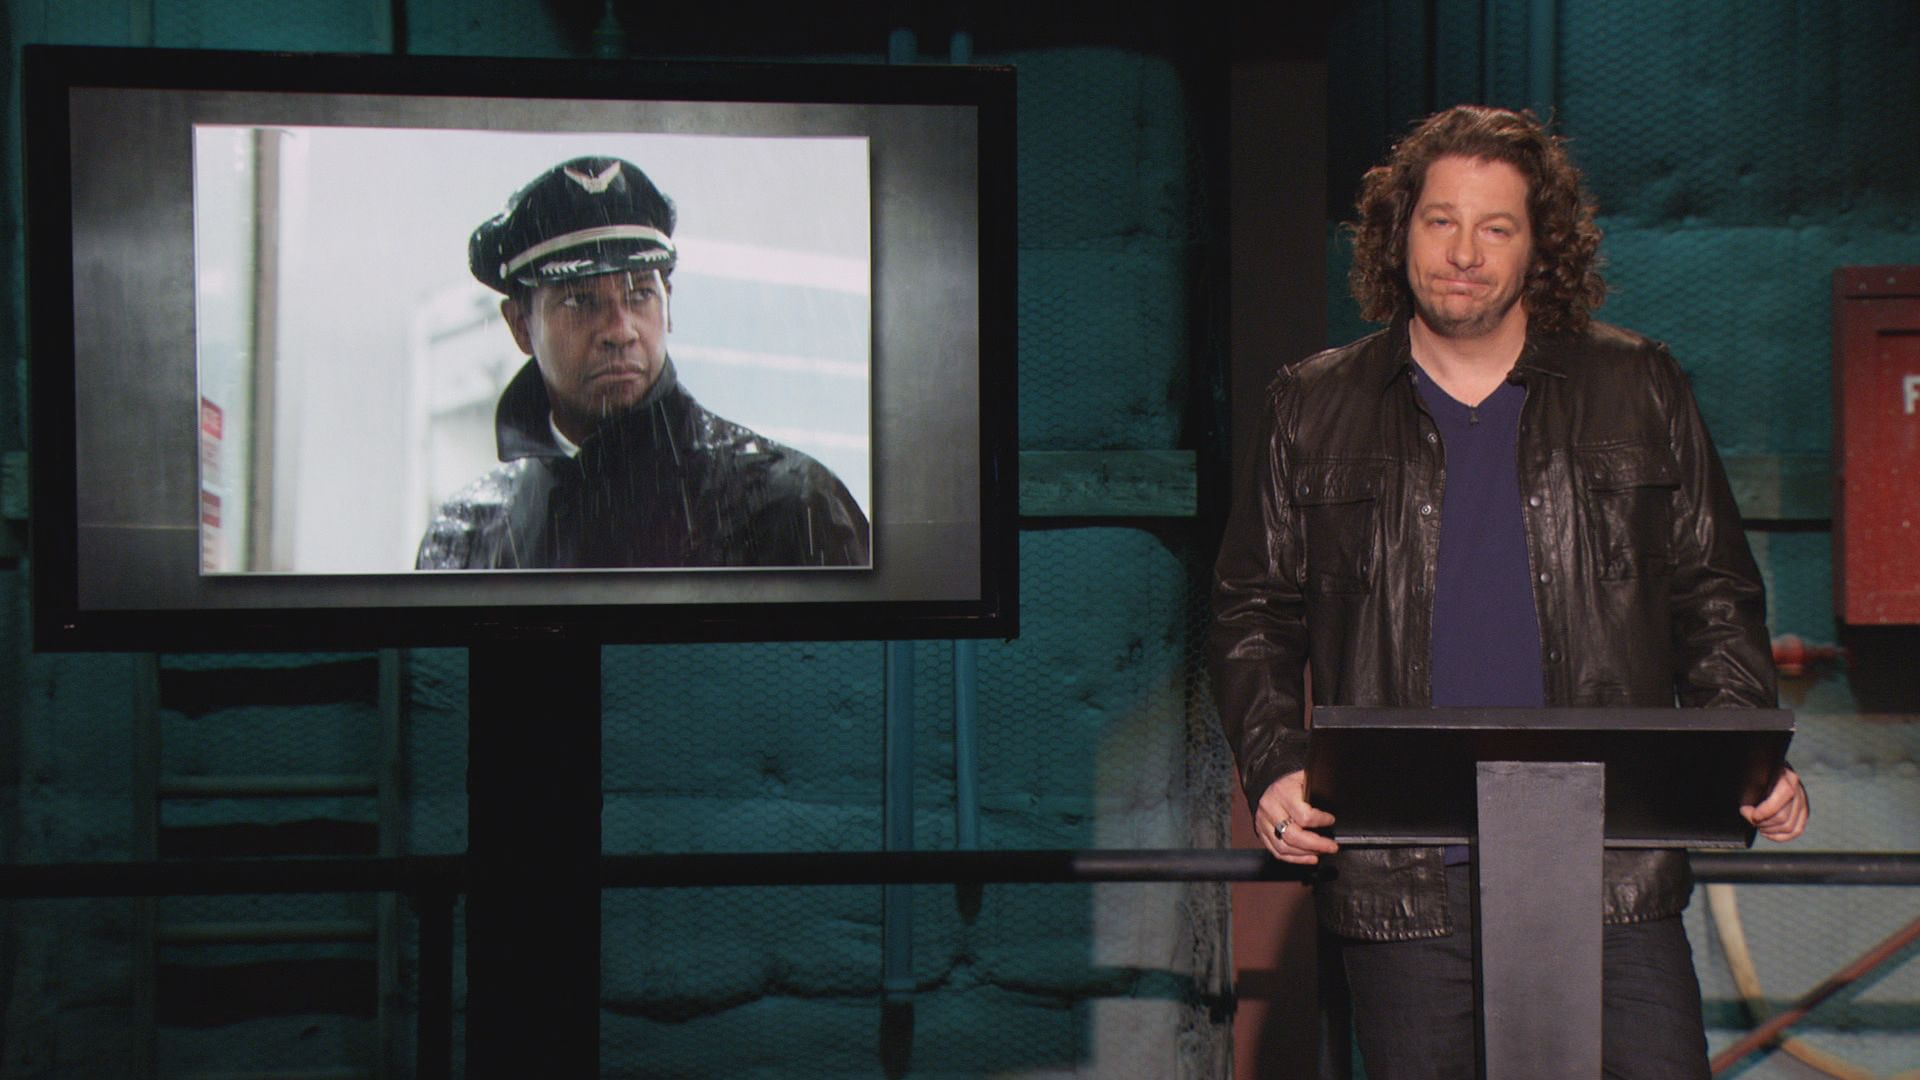 The Burn with Jeff Ross | Comedy Central: The Burn: Oscar Nominations & Taylor Swift Break Up